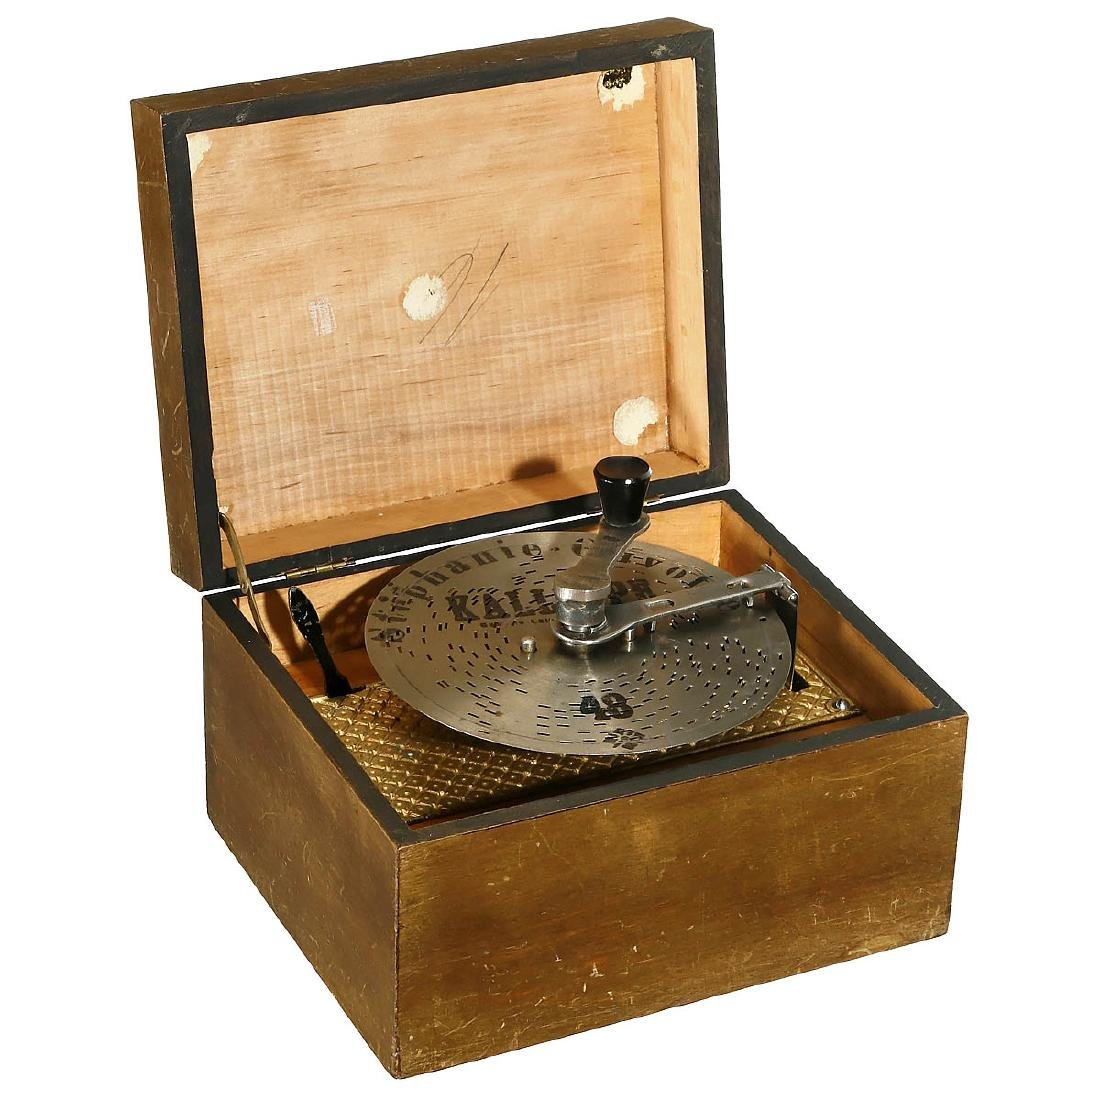 Kalliope Disc Musical Box, c. 1900